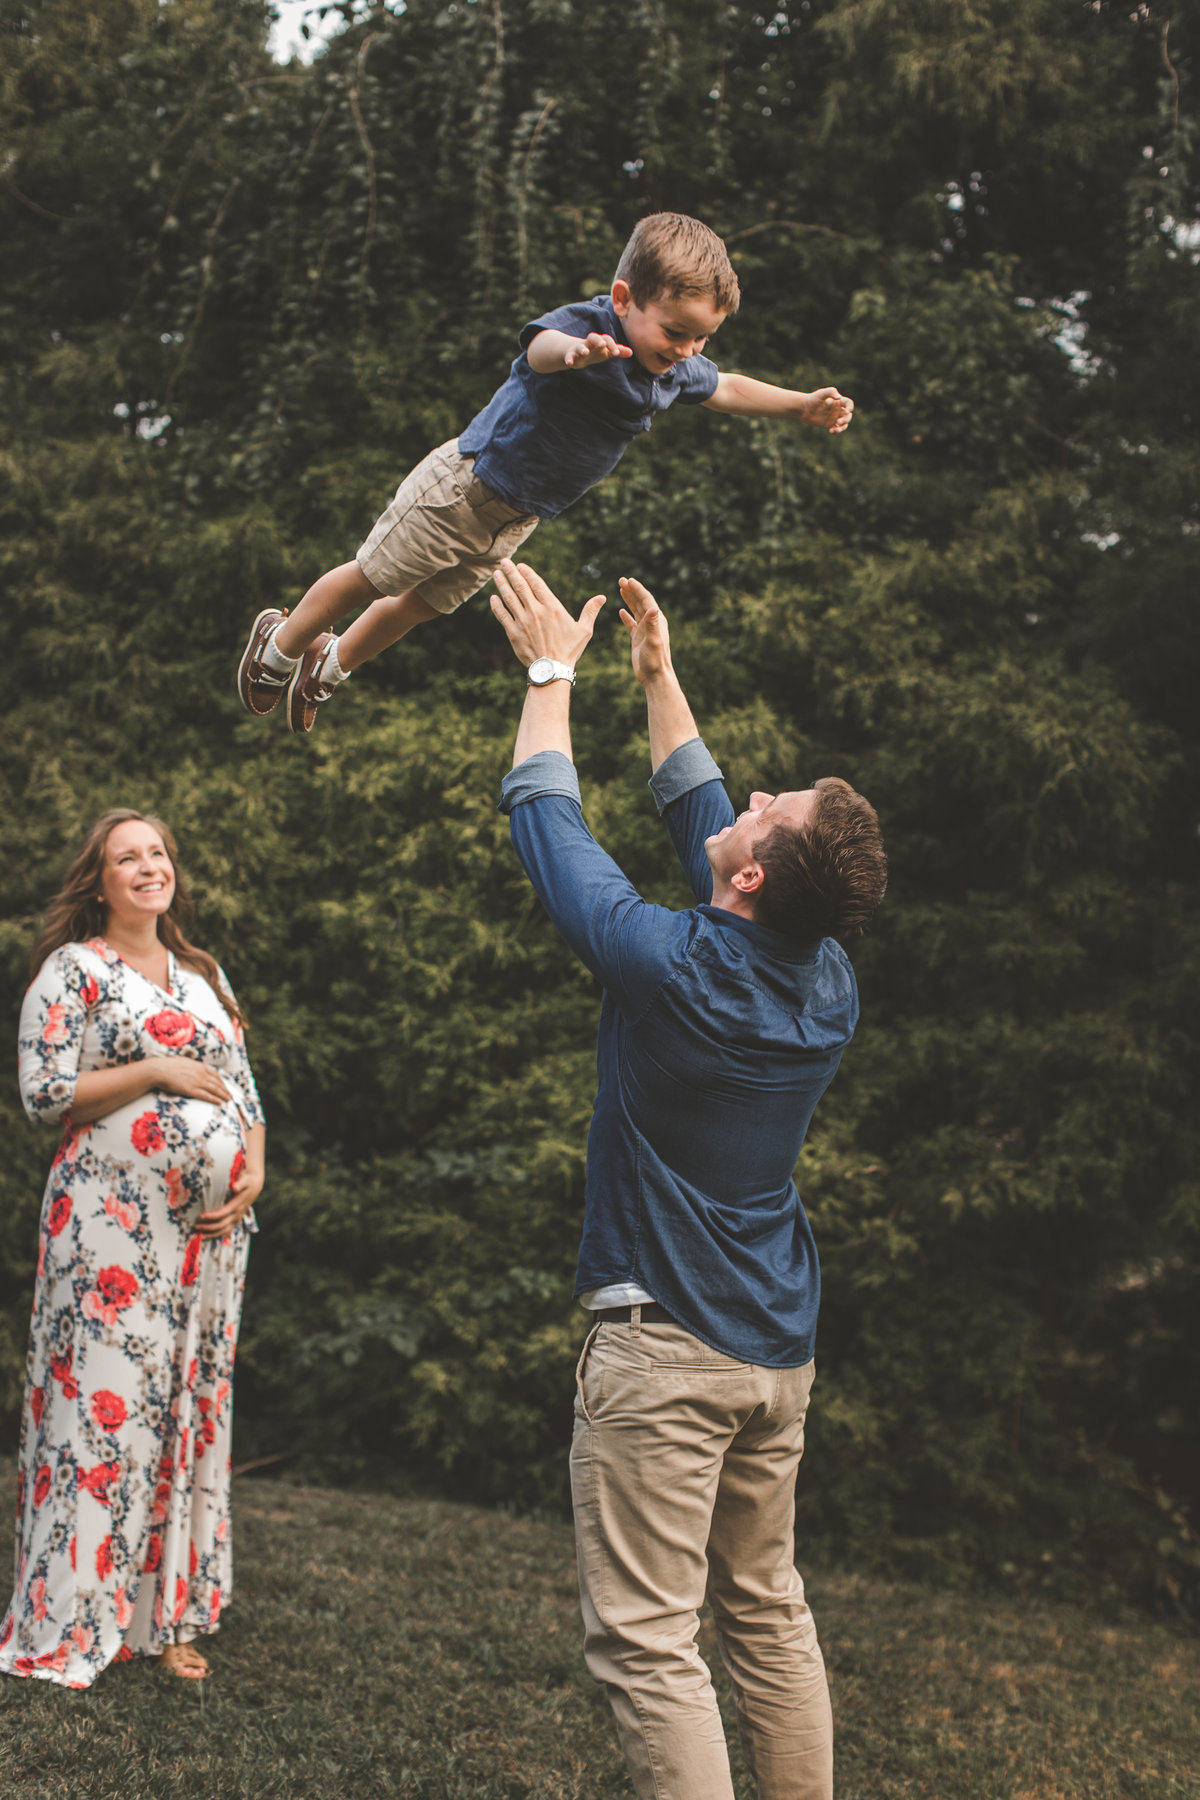 Providence_Rhode_Island_Roger_Williams_Park_maternity_family_session_About_Time_Photography_photo_10